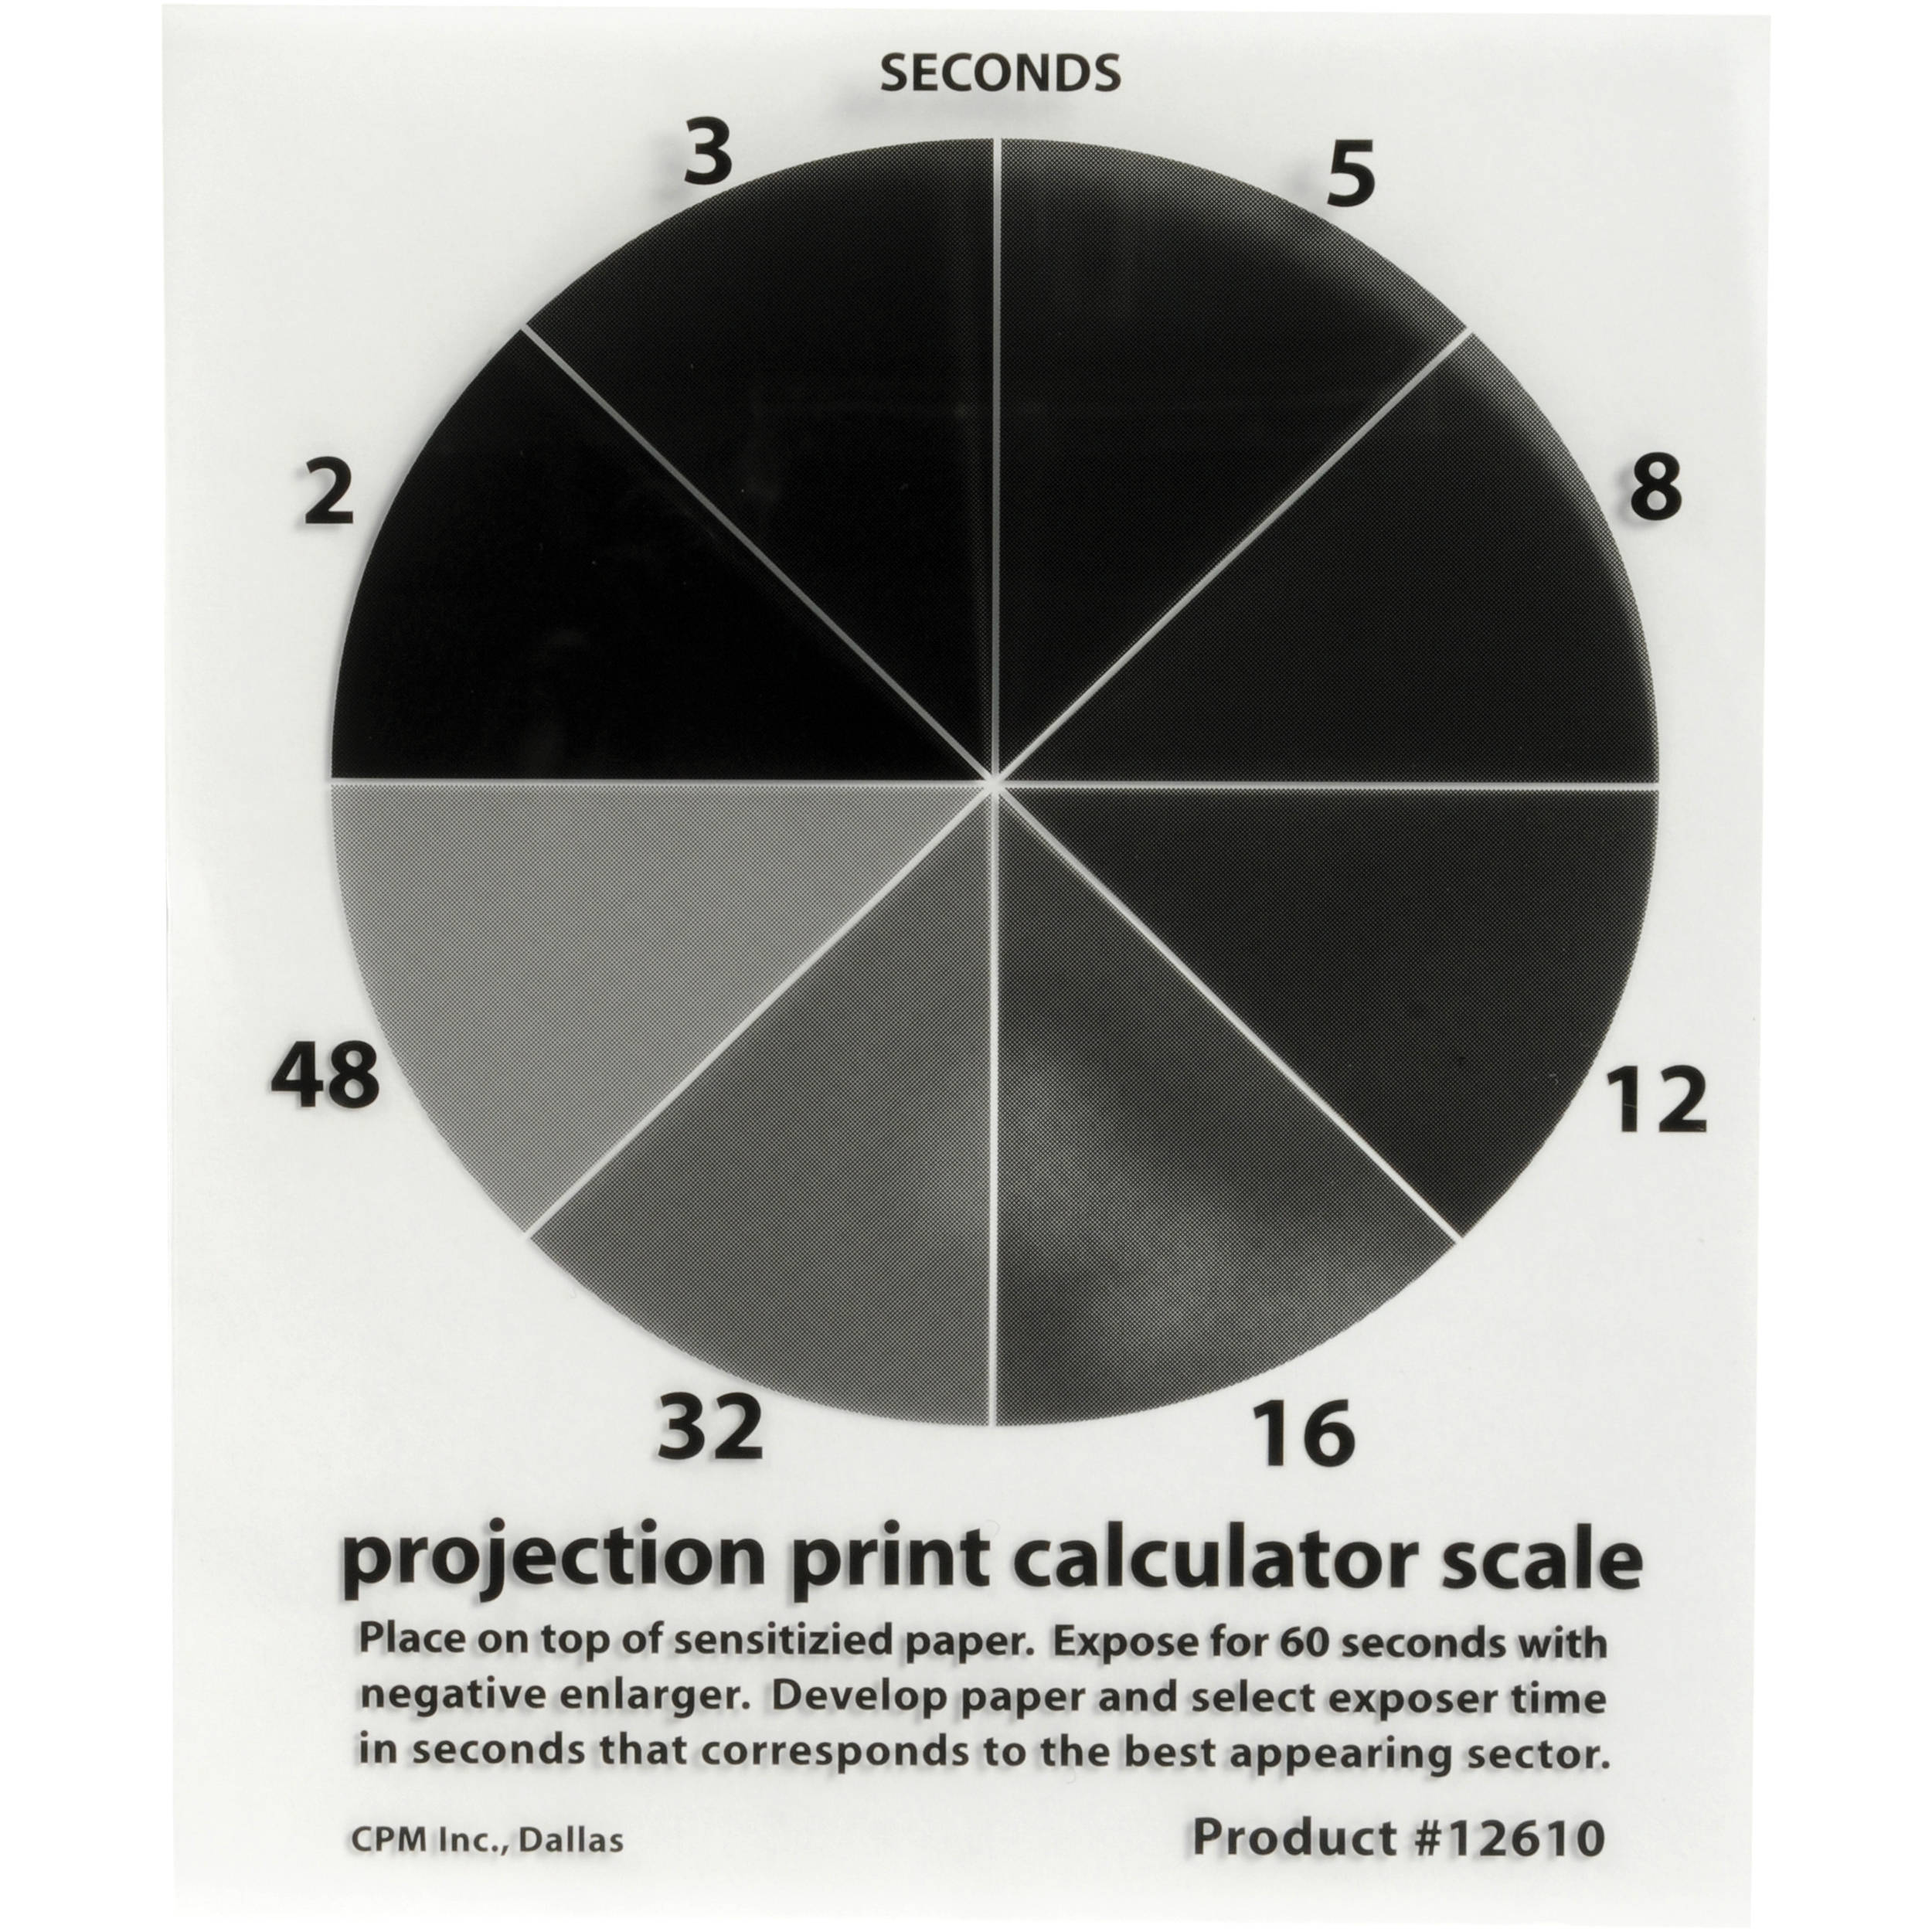 Delta_12610_Projection_Print_Calculator_Scale_15711 darkroom enlarger accessories b&h photo video  at soozxer.org